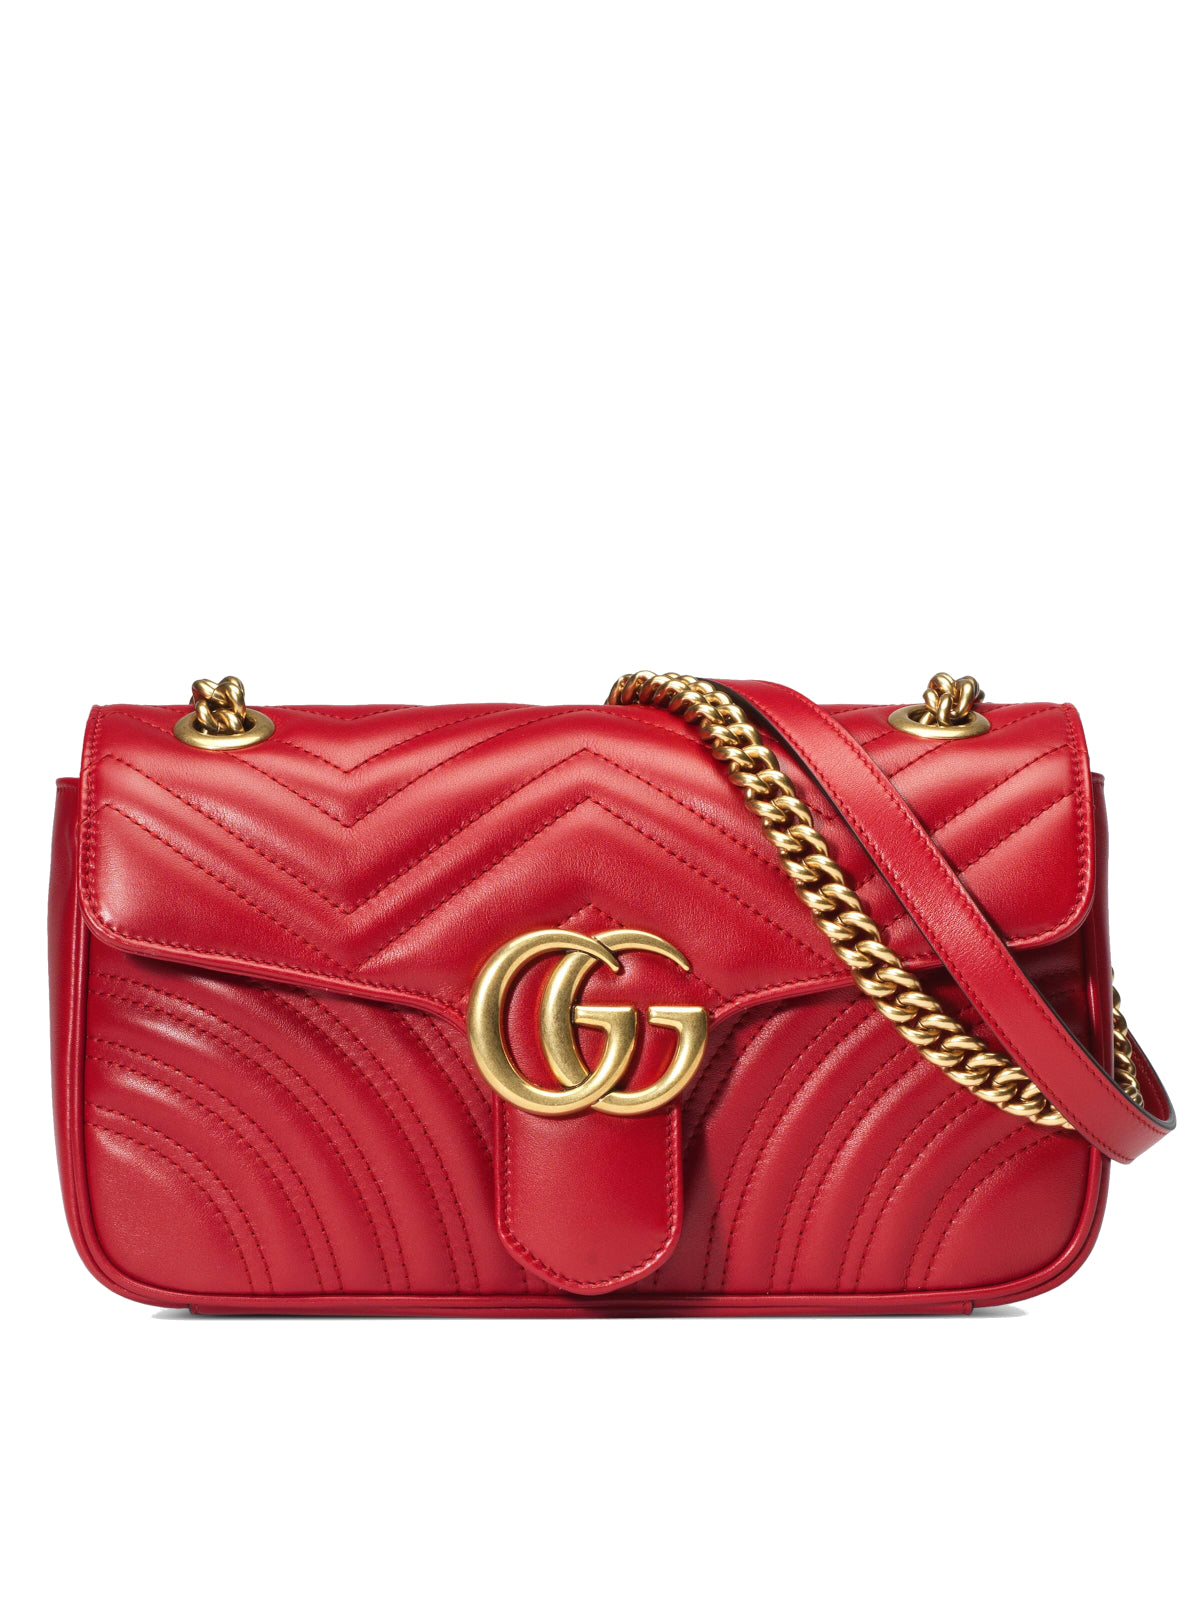 GG MARMONT MATELASSE` SMALL BAG